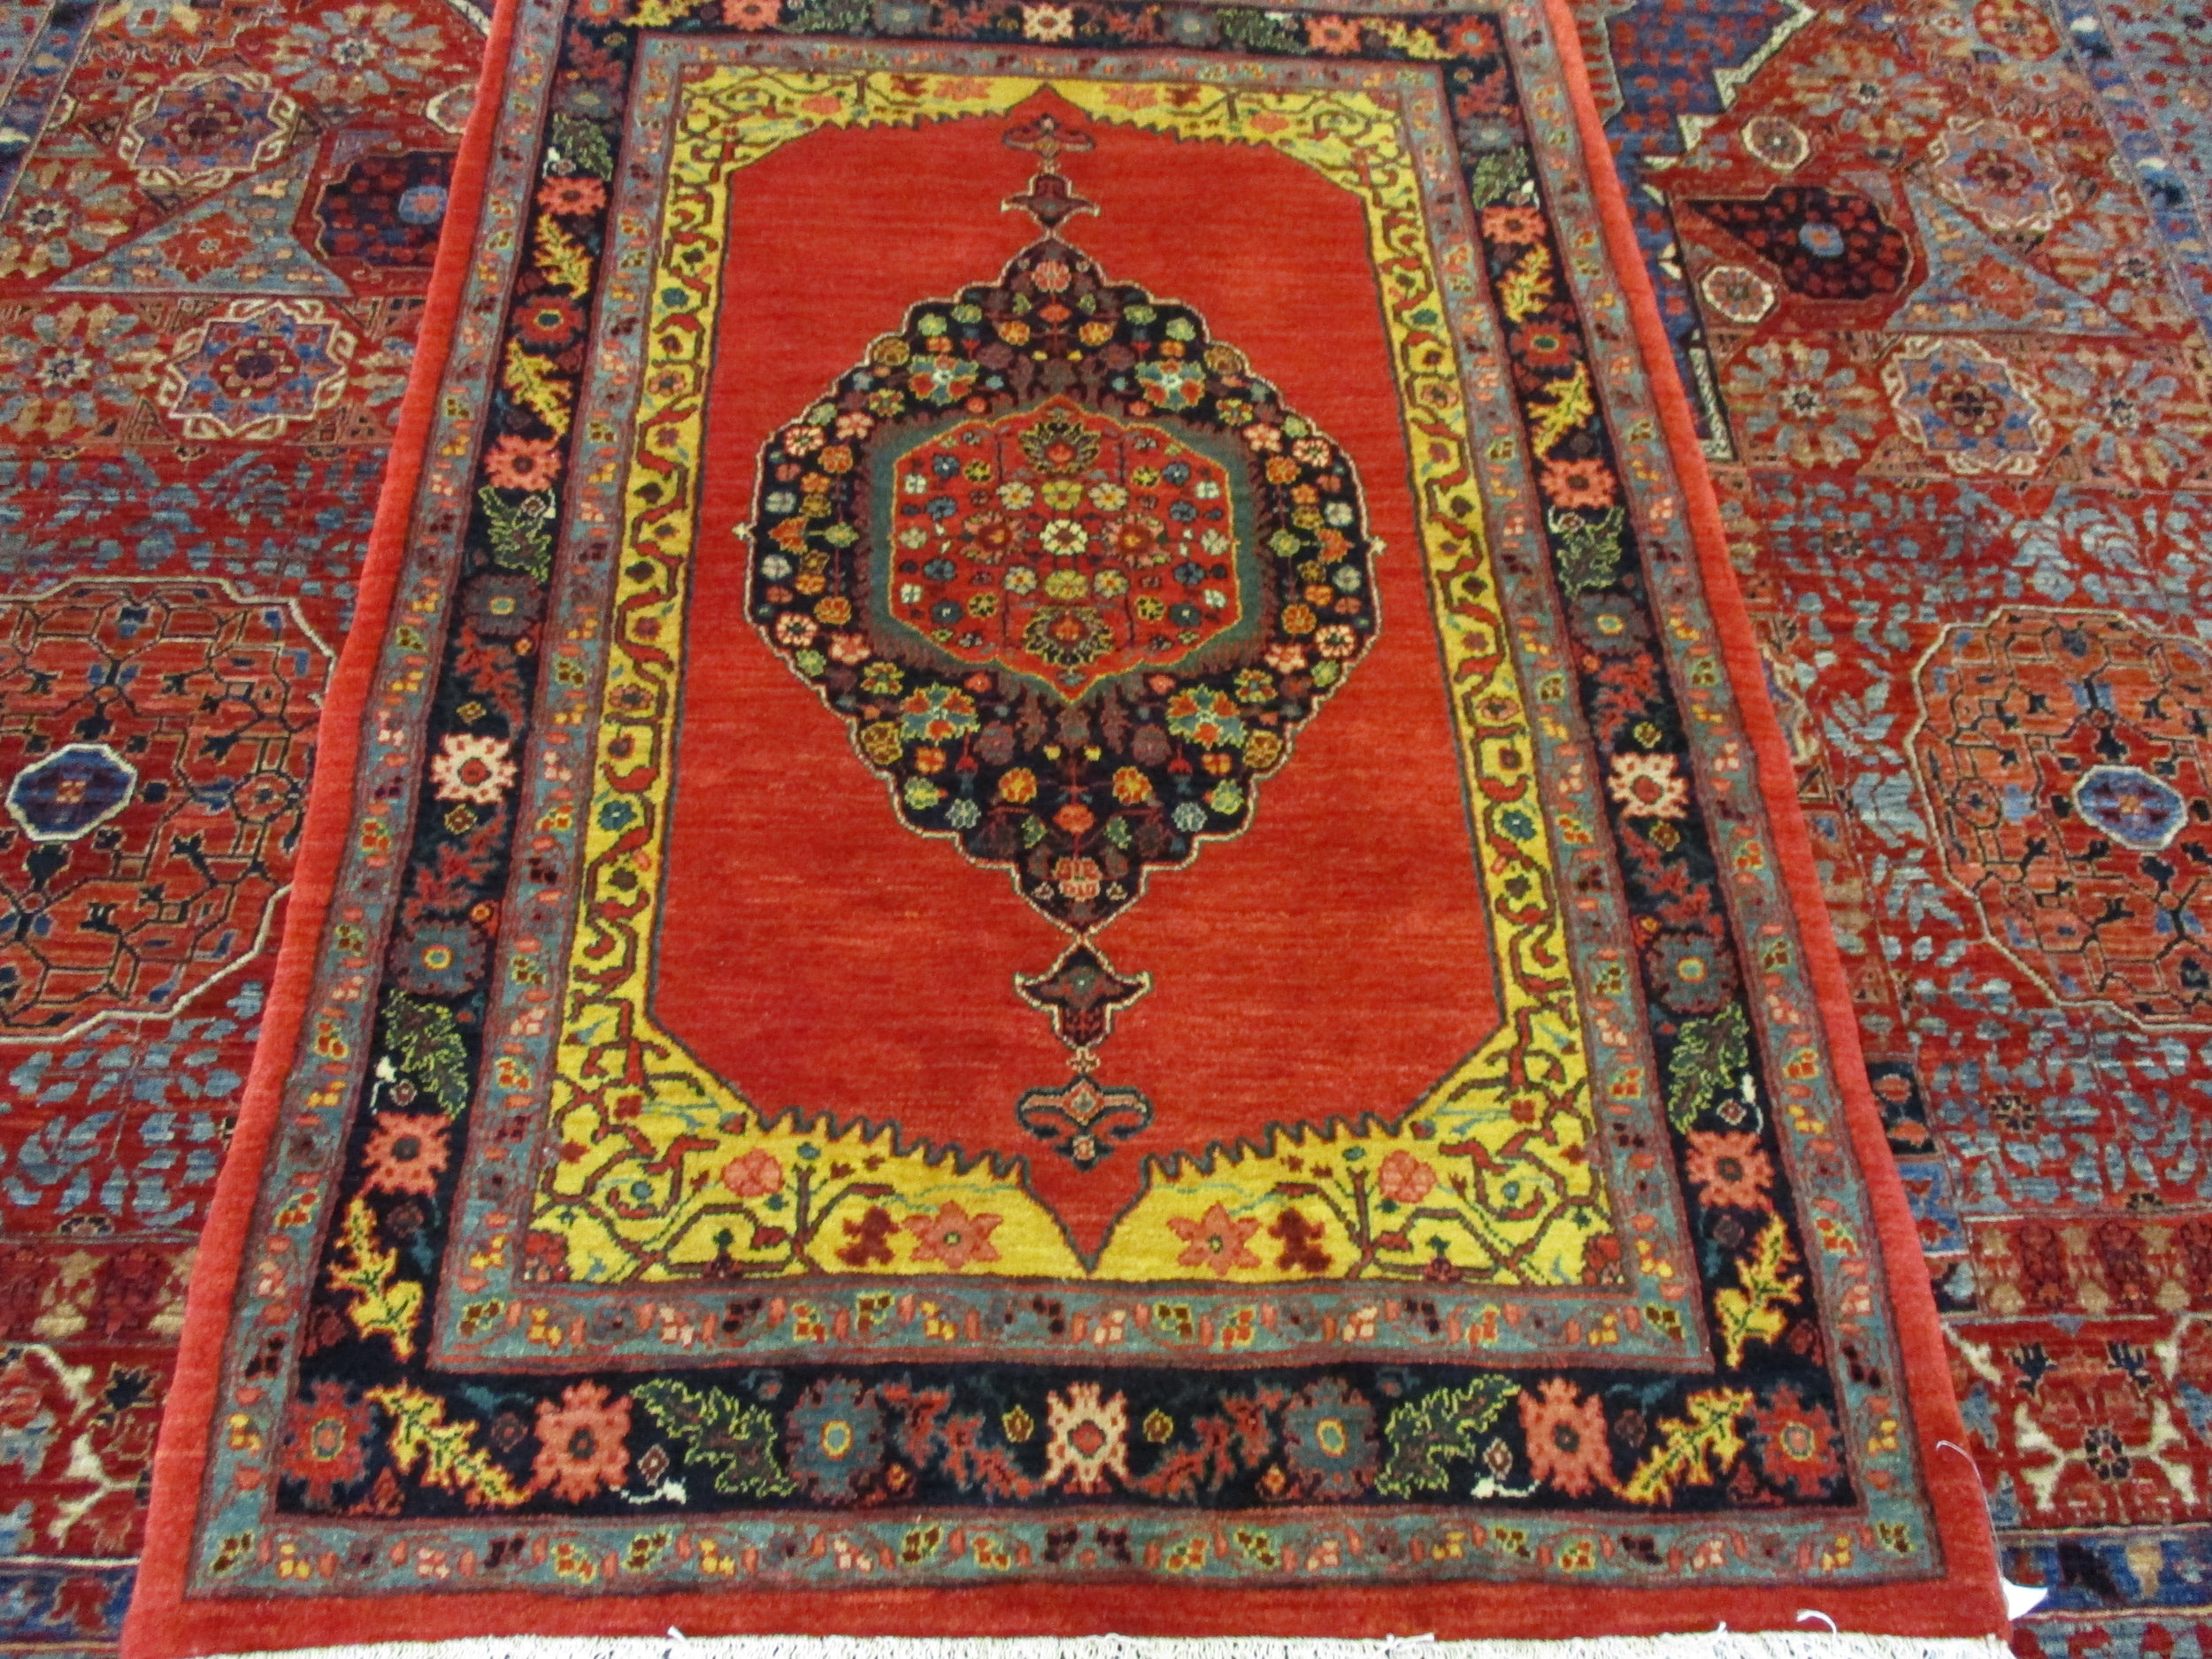 Beautiful-Bijar-rug-for-sale.JPG